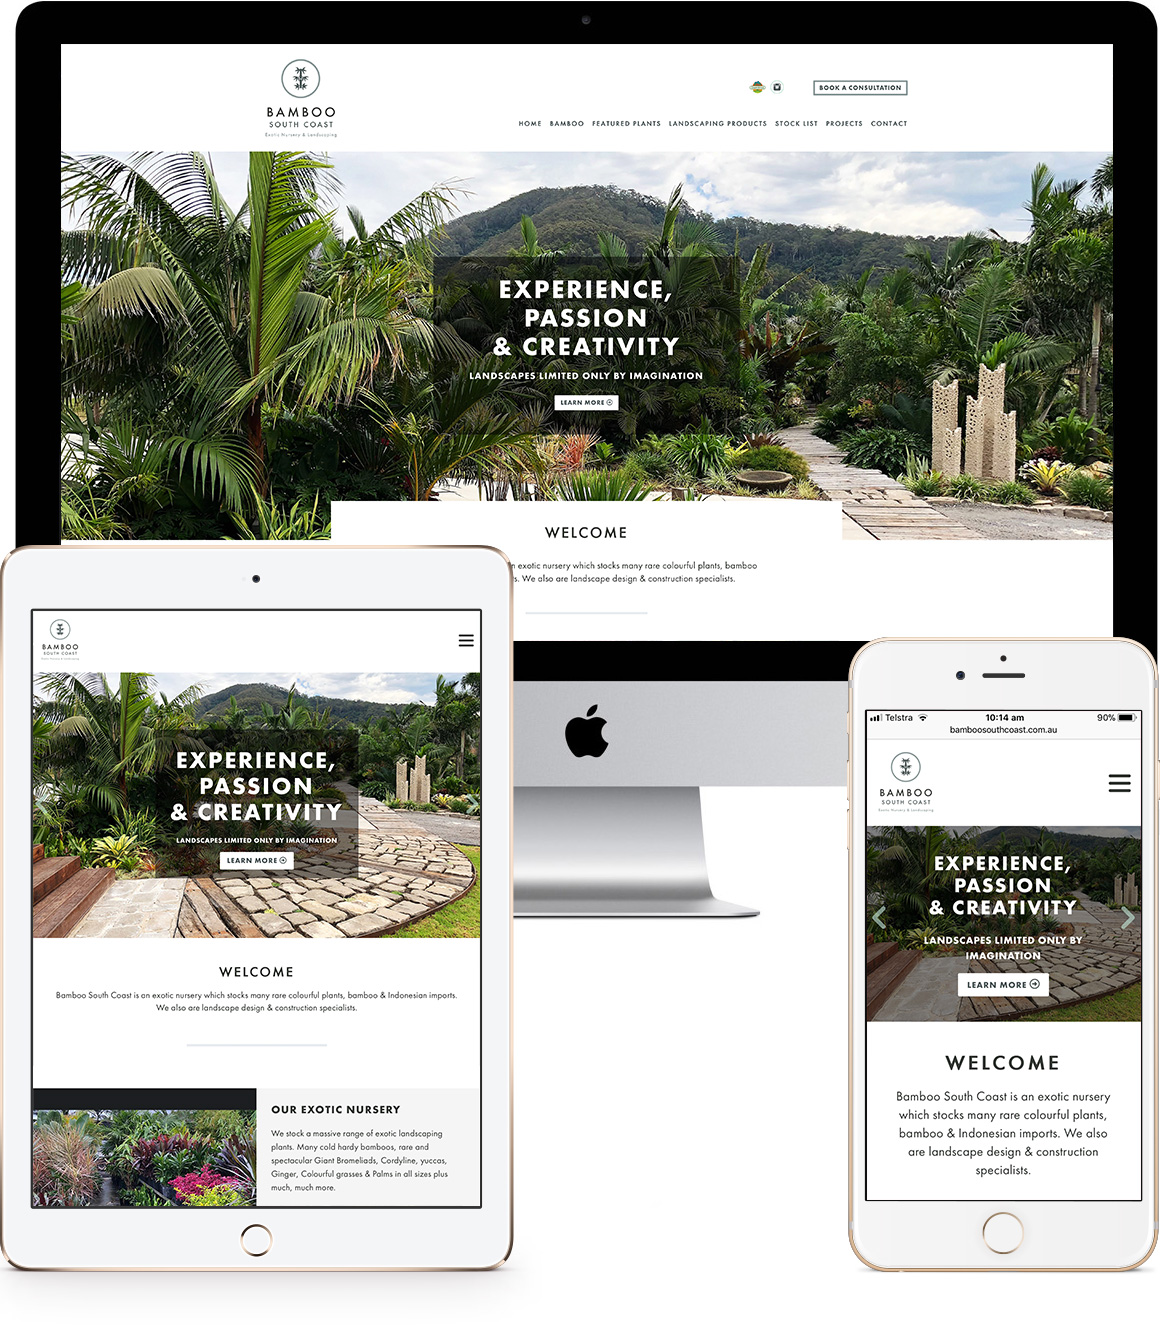 Bamboo South Coast Website Design and Development